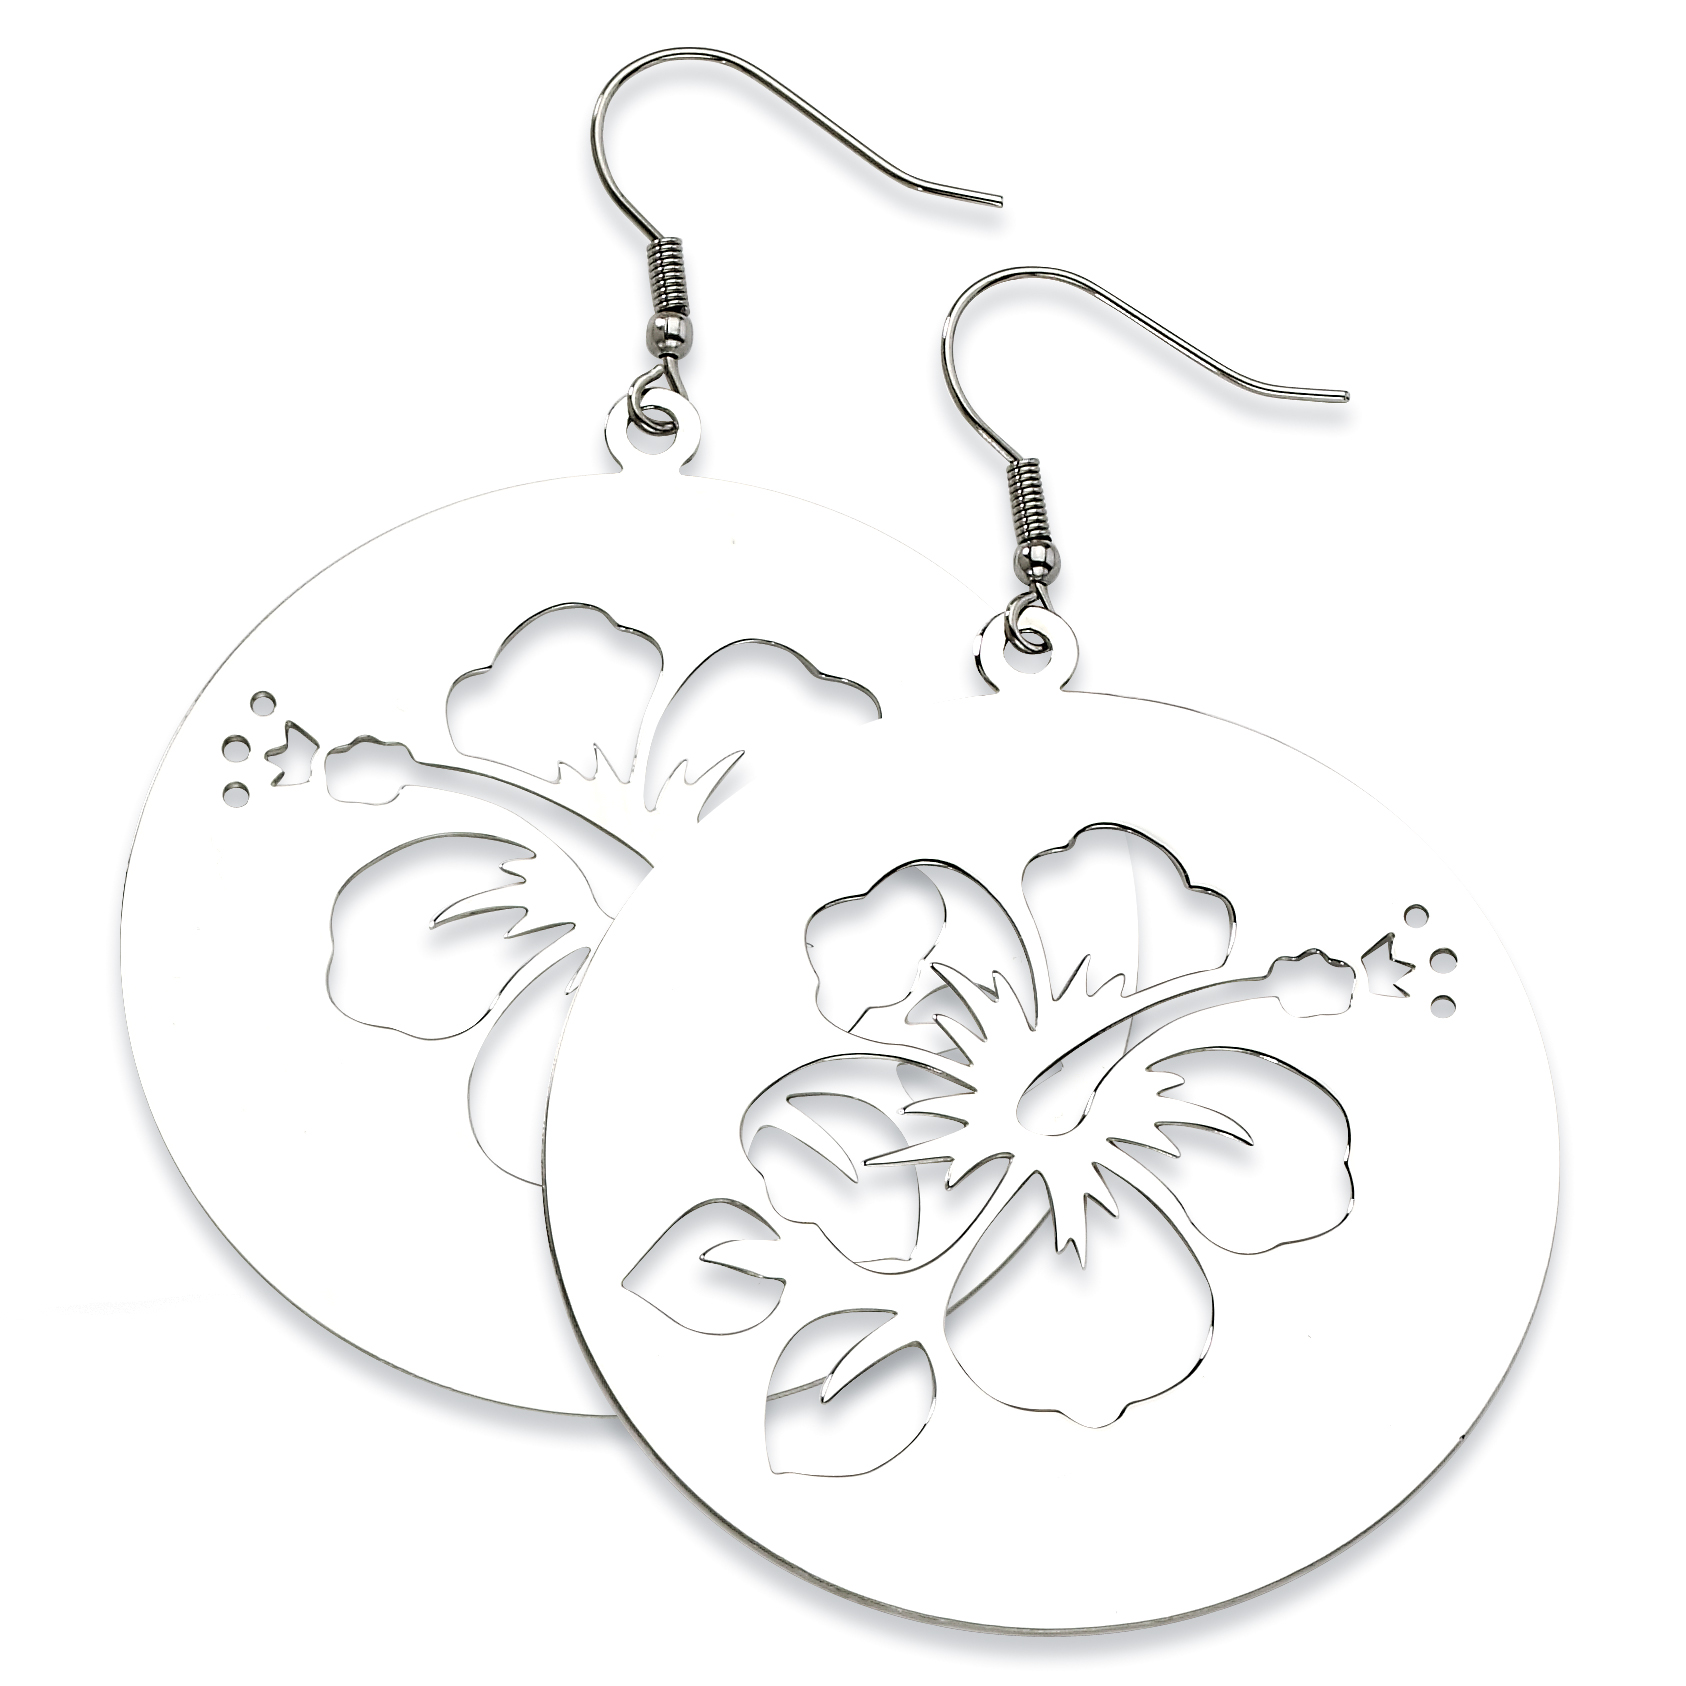 Stainless Steel Hibiscus Cutout Drop Dangle Chandelier Earrings Flower Gardening Fashion Jewelry Gifts For Women For Her - image 2 de 2